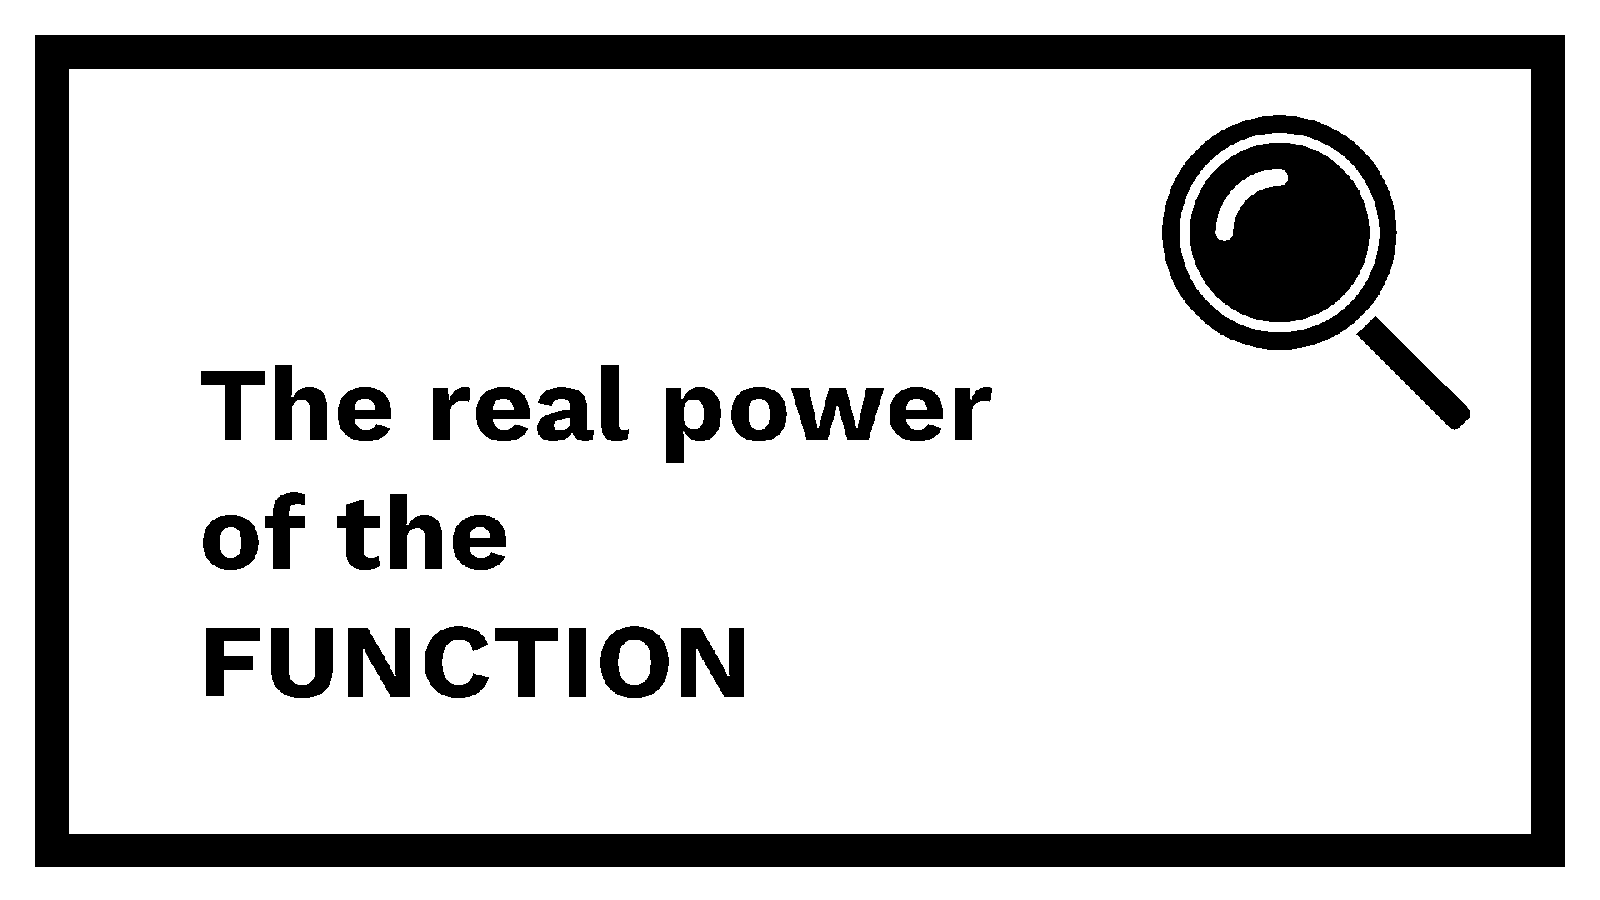 The real power of the function